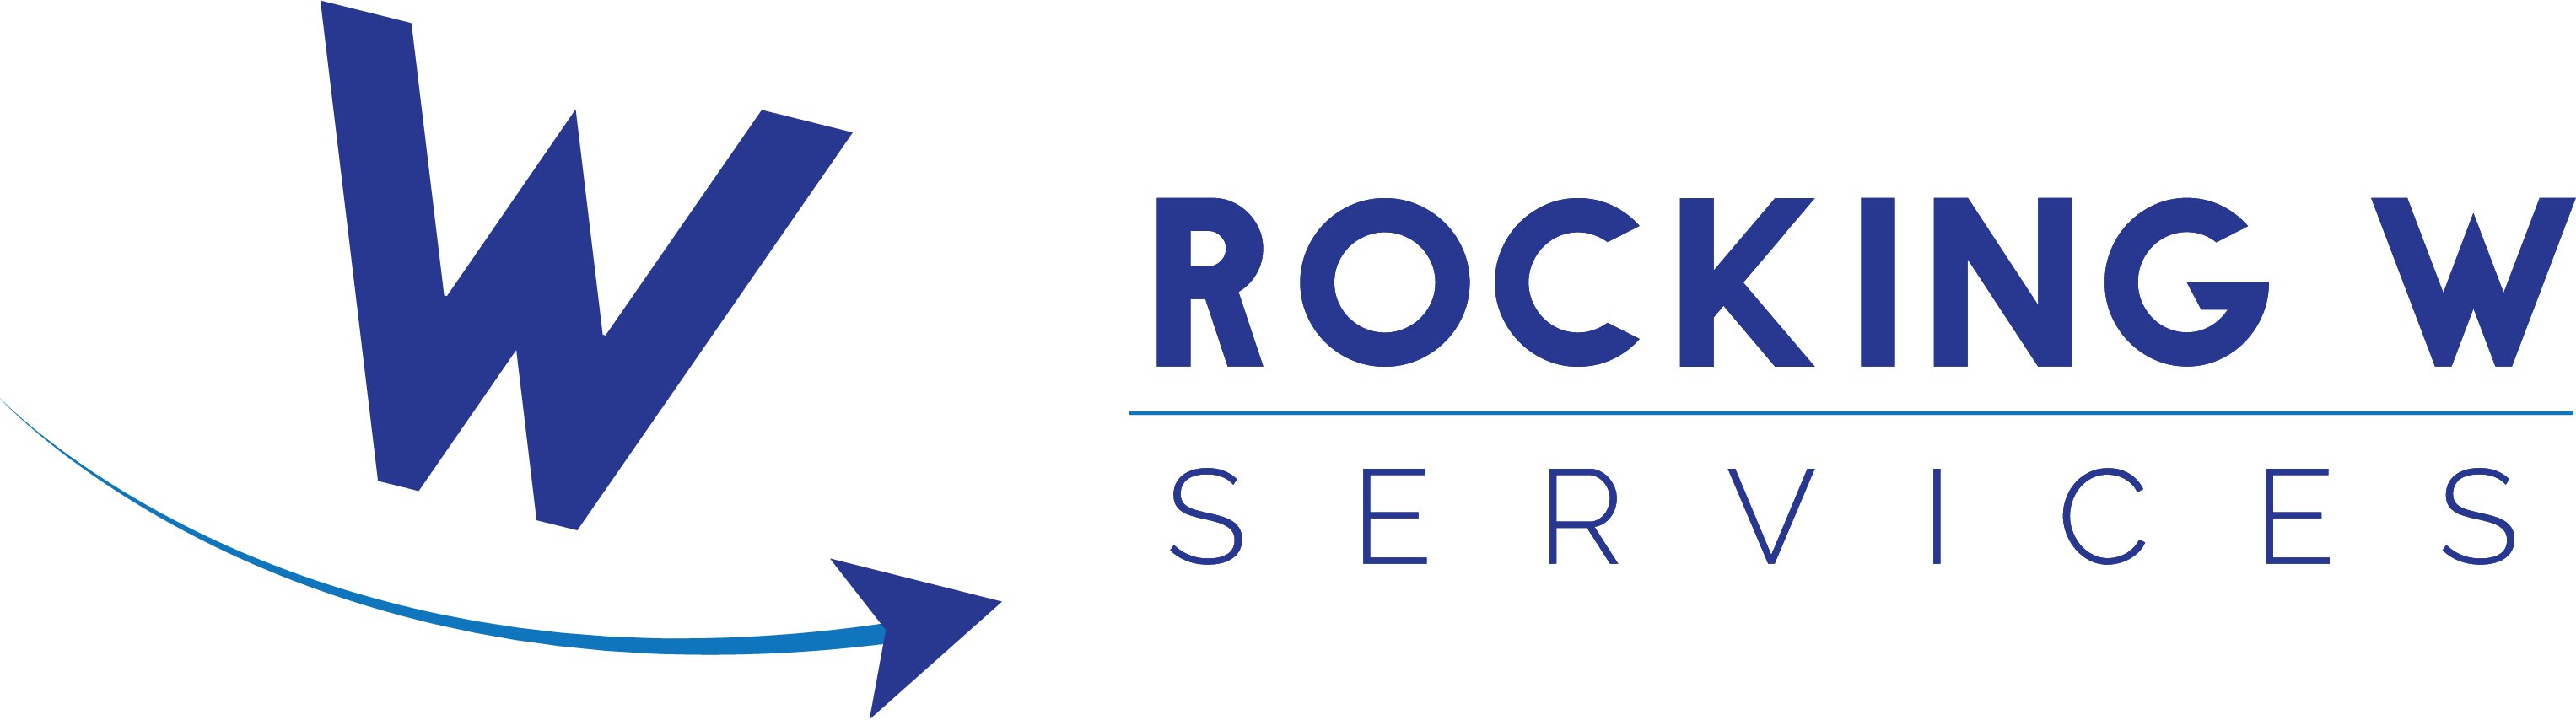 Rocking W Services – Project Management